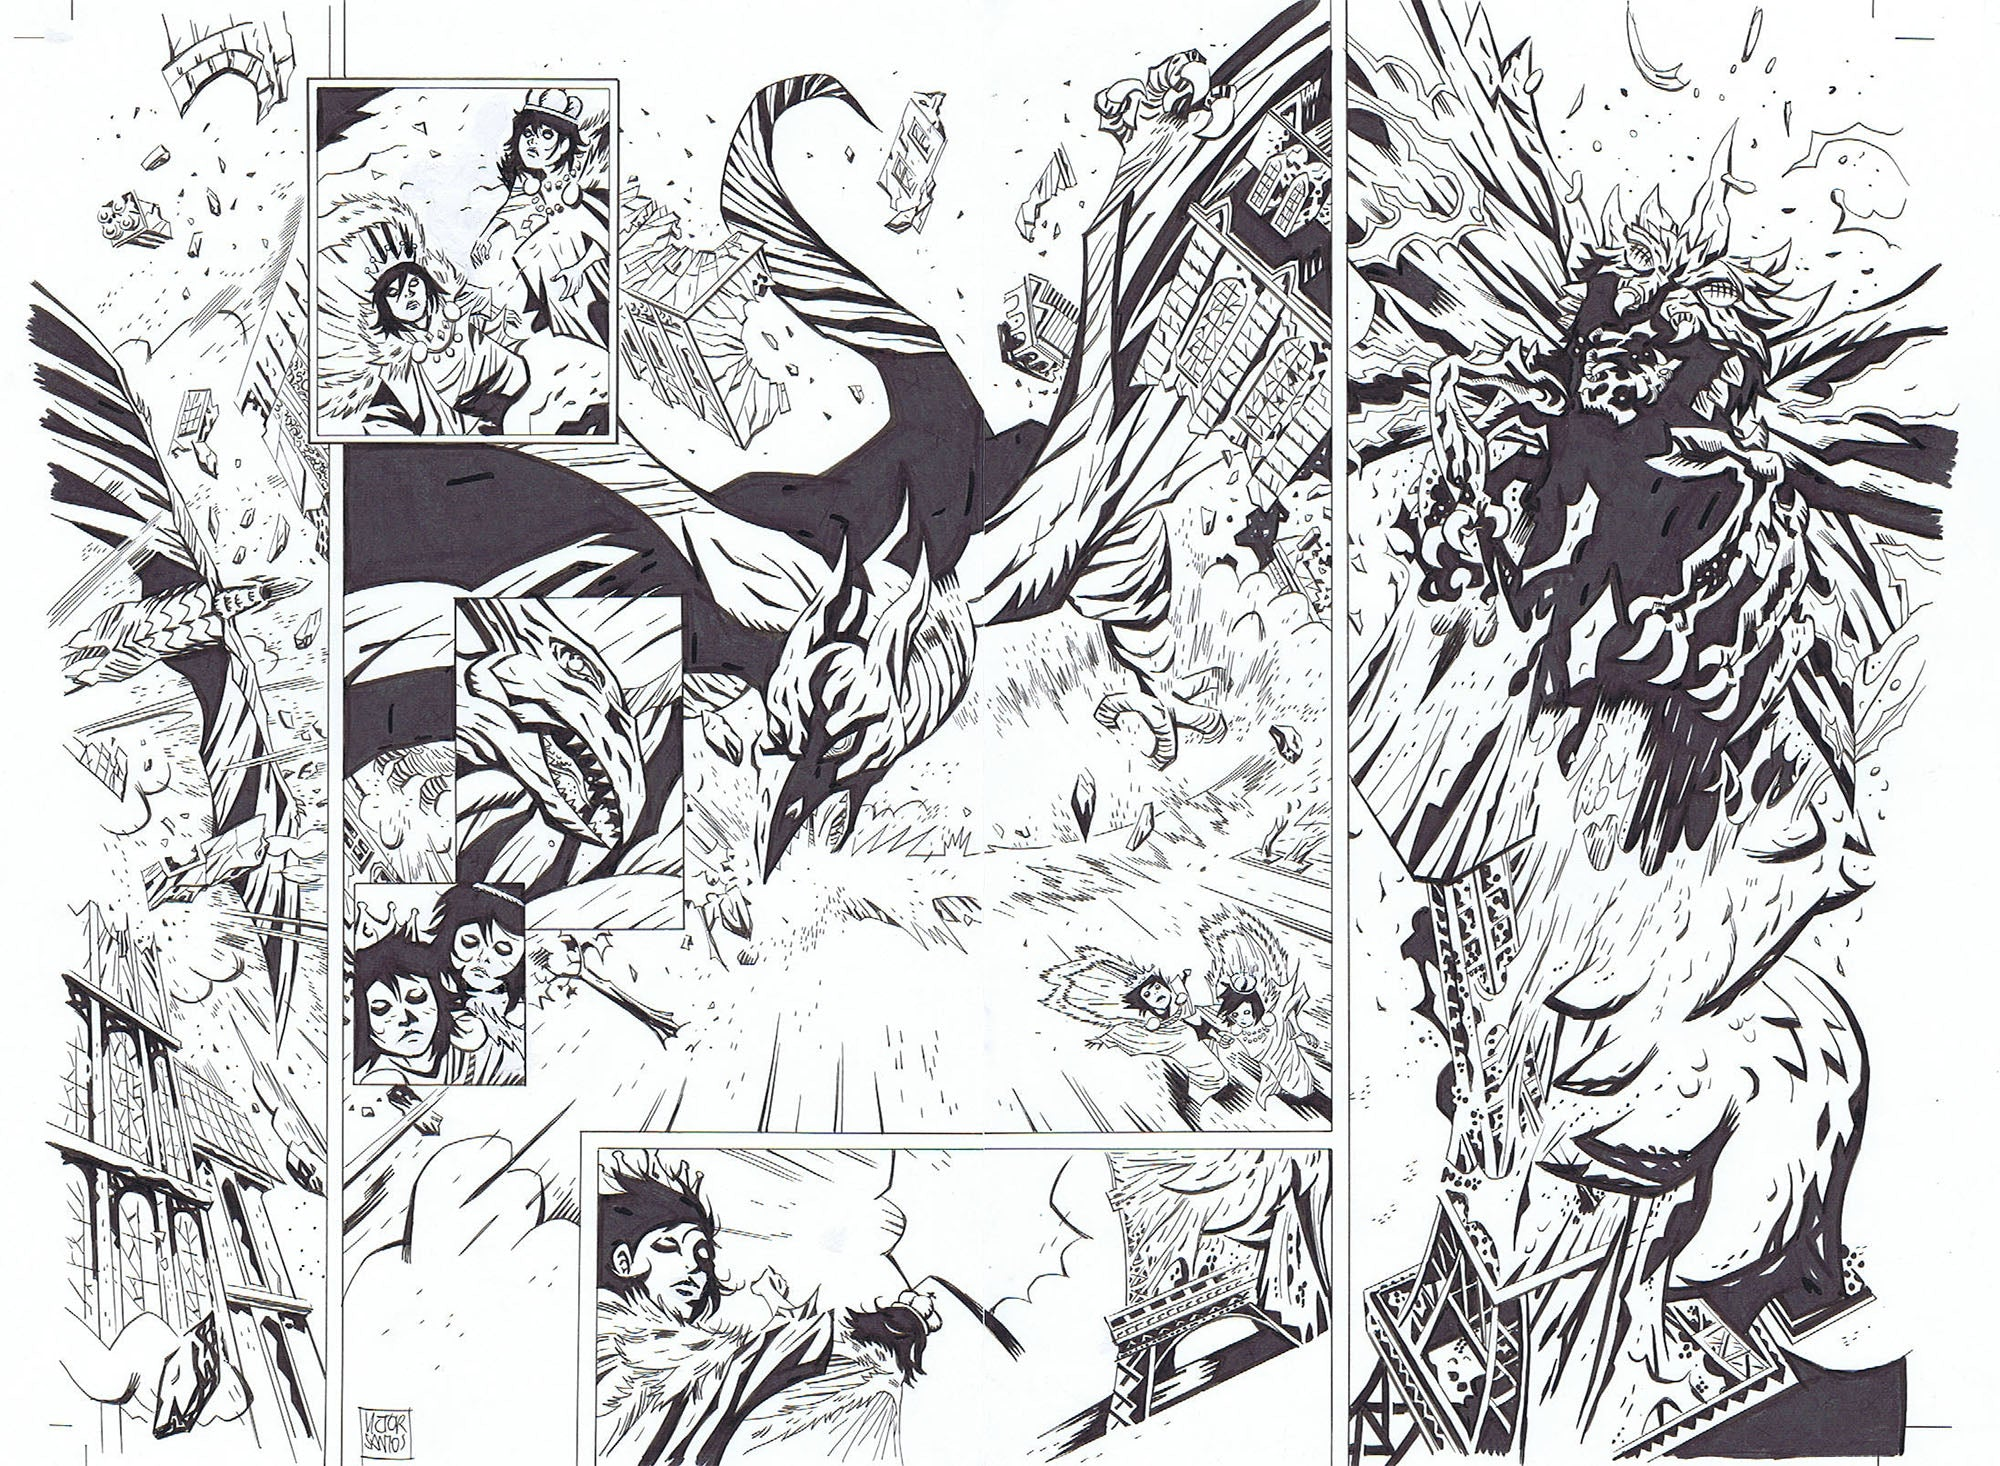 GODZILLA DOUBLE-PAGE INTERIOR + LAYOUT FEATURING RODAN